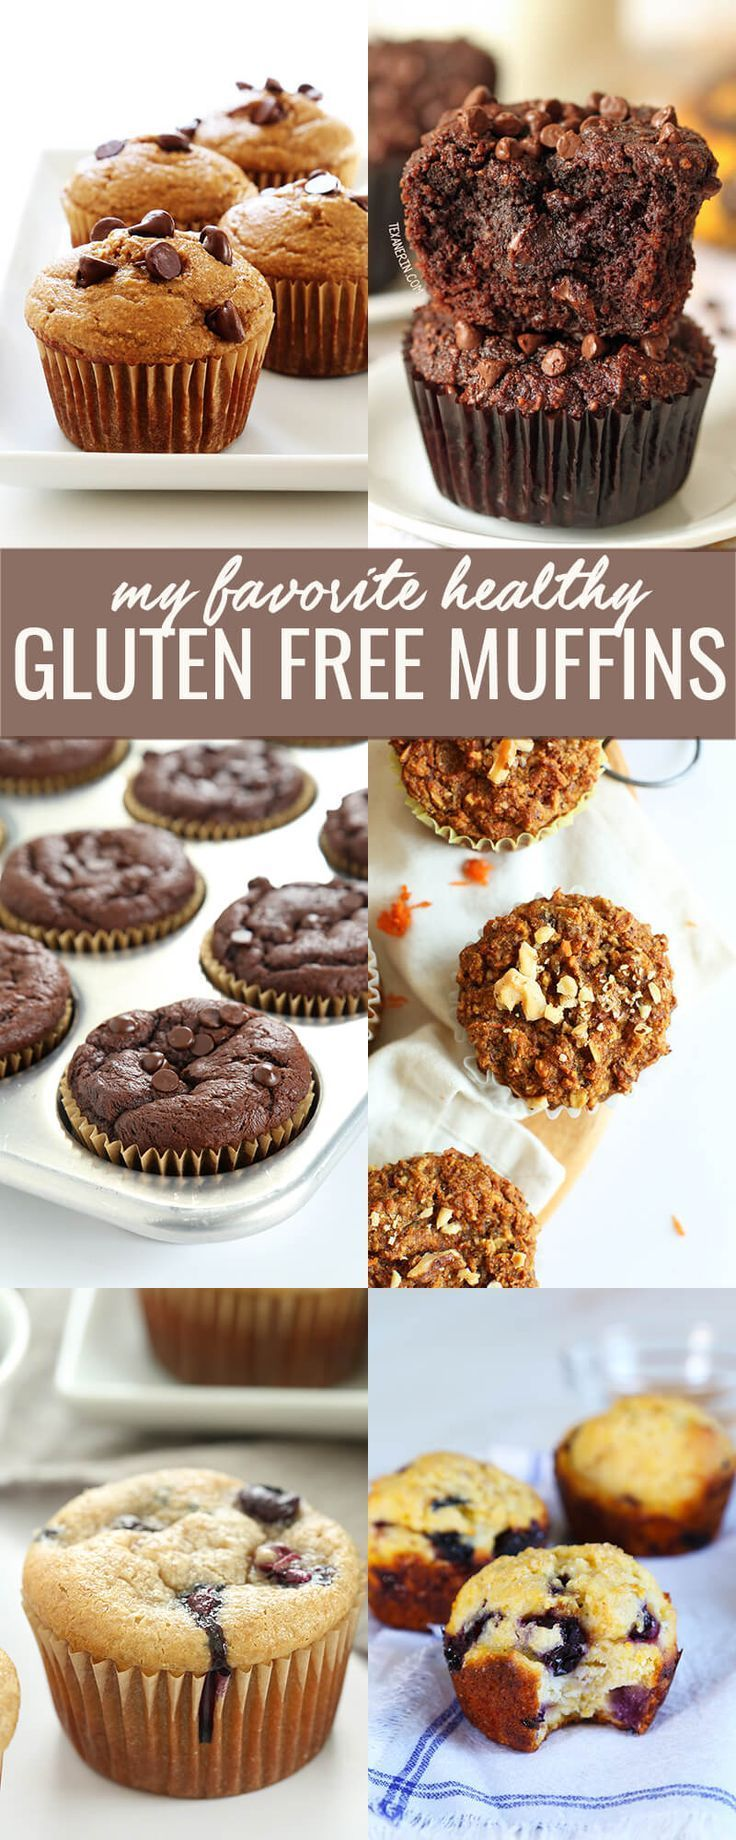 10 gluten free muffin recipes, for everything from blueberry and banana to chocolate and chocolate chip—even Paleo or vegan. We've taken the classic breakfast muffin and made it into a truly healthy gluten free breakfast! http://glutenfreeonashoestring.com/gluten-free-muffins-healthy/